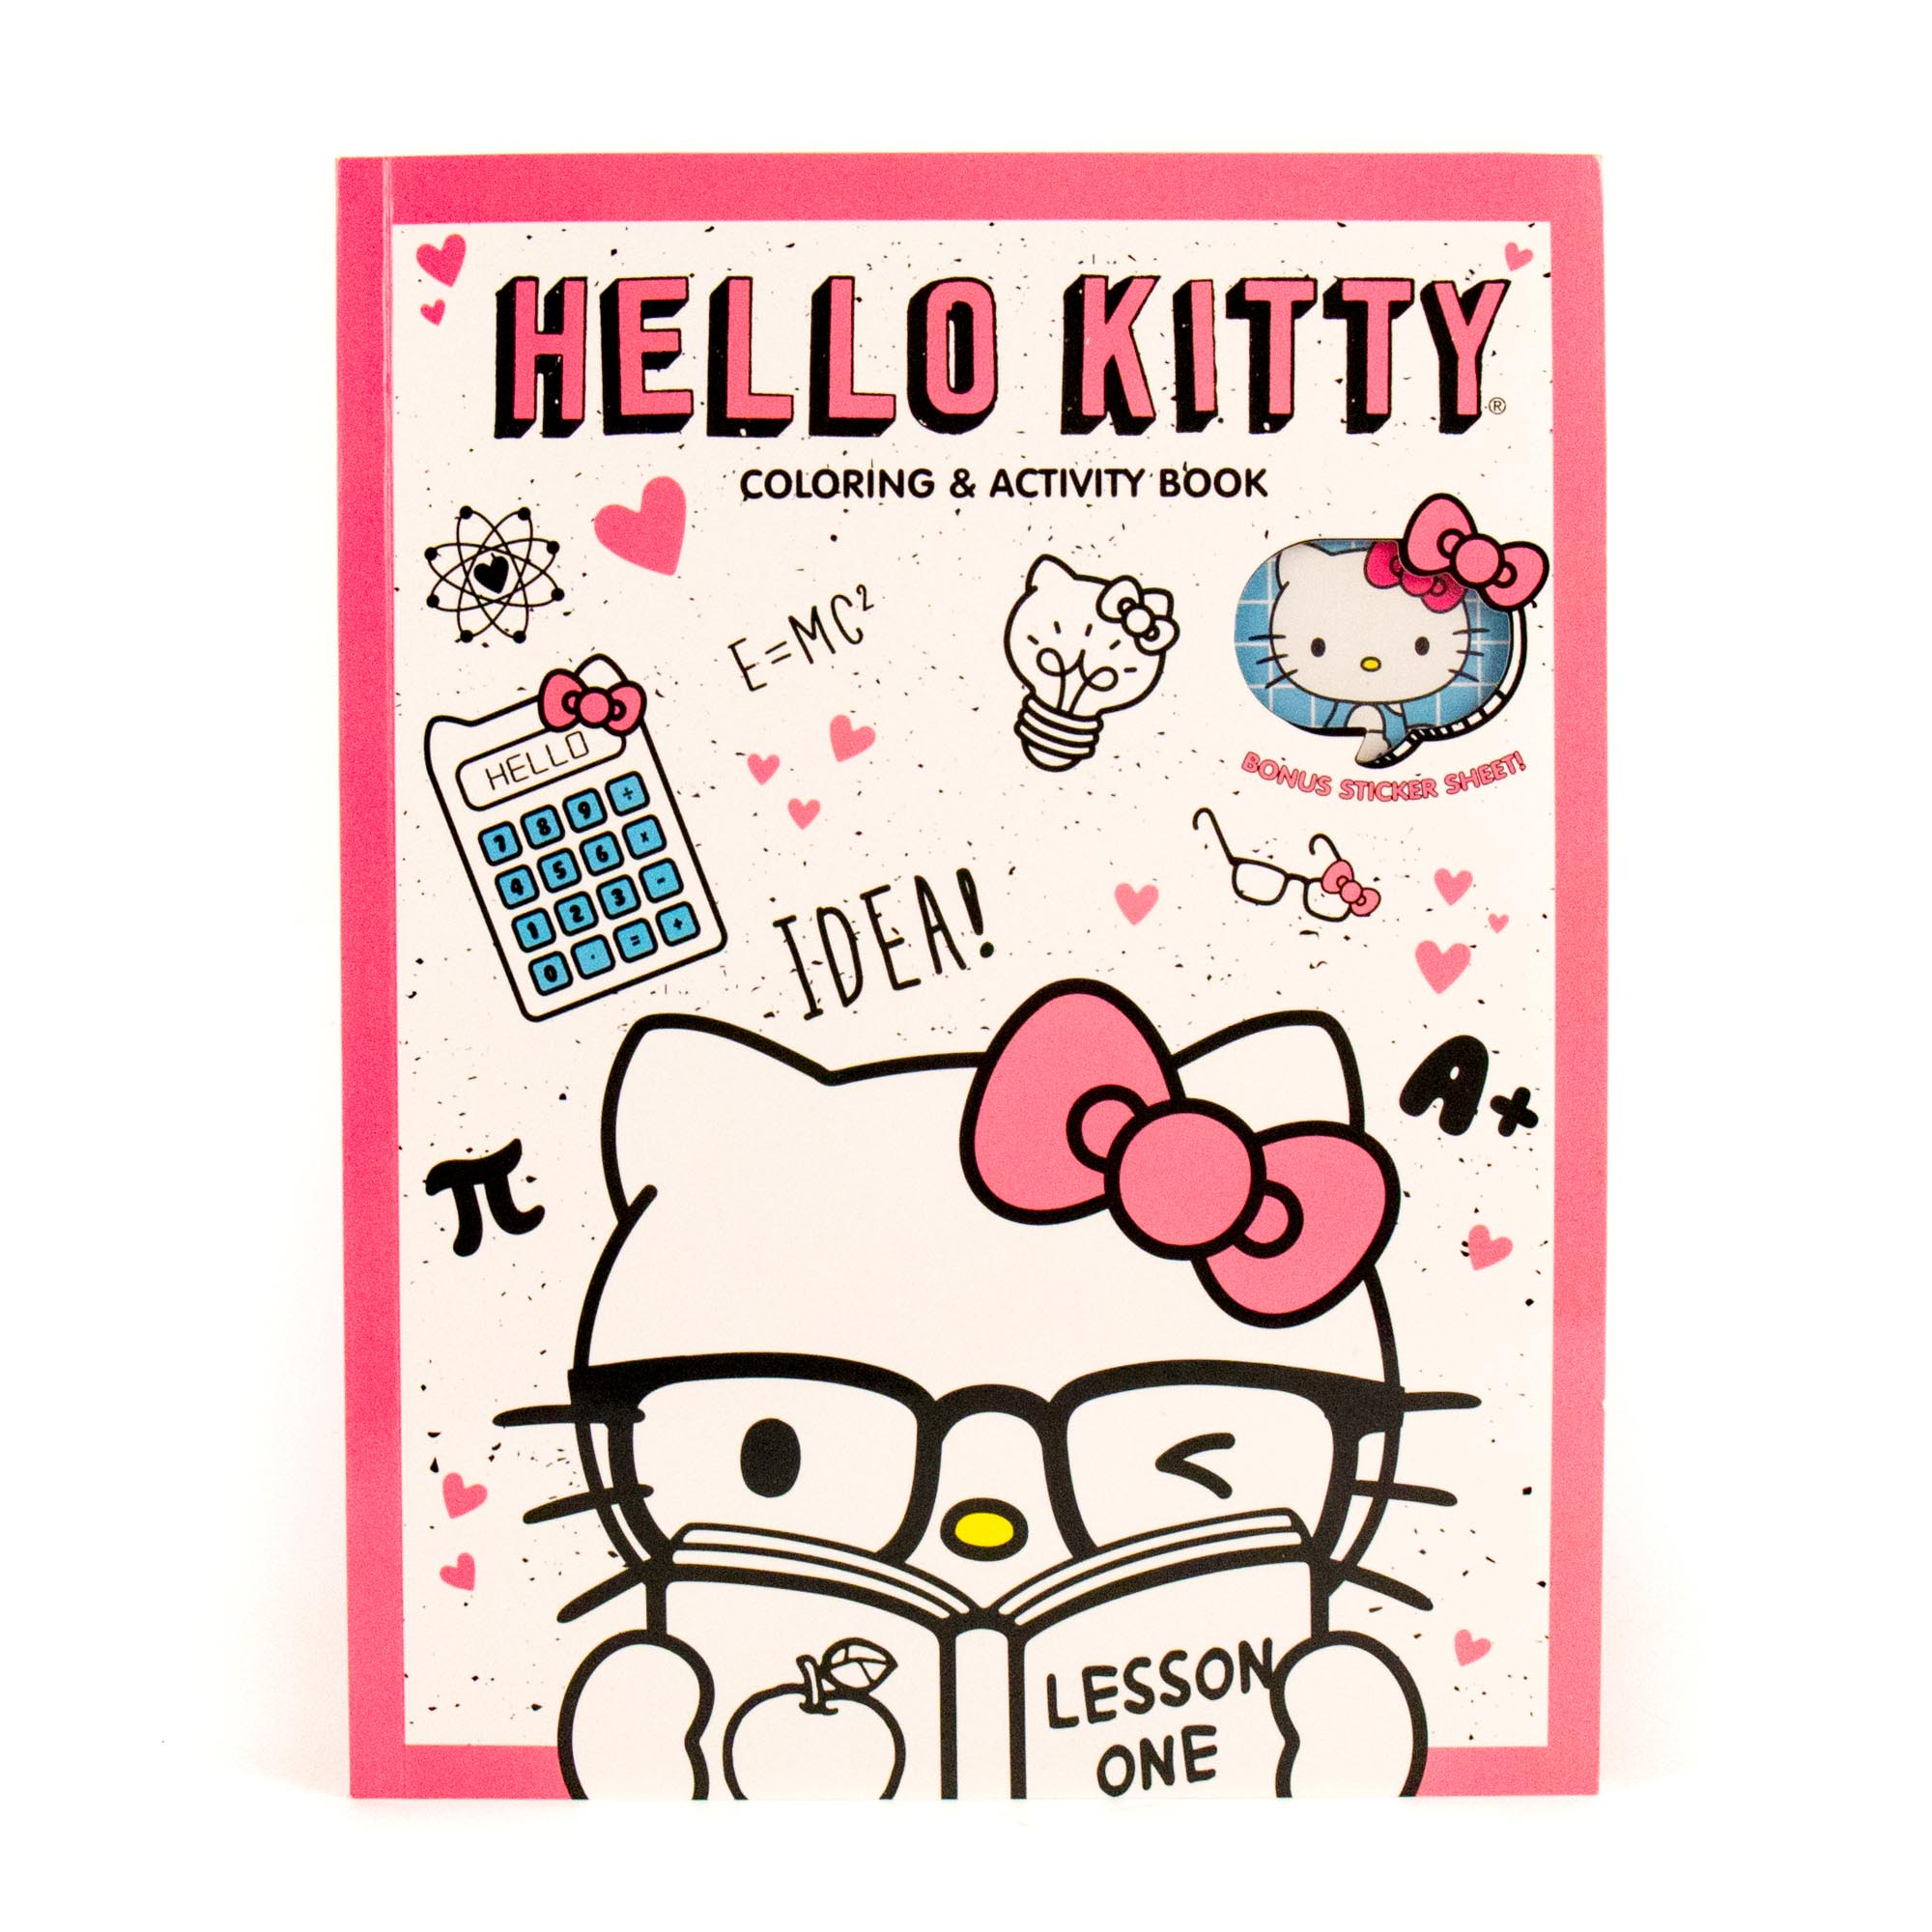 Hello Kitty Coloring Book, 90 Pgs by Horizon Group USA